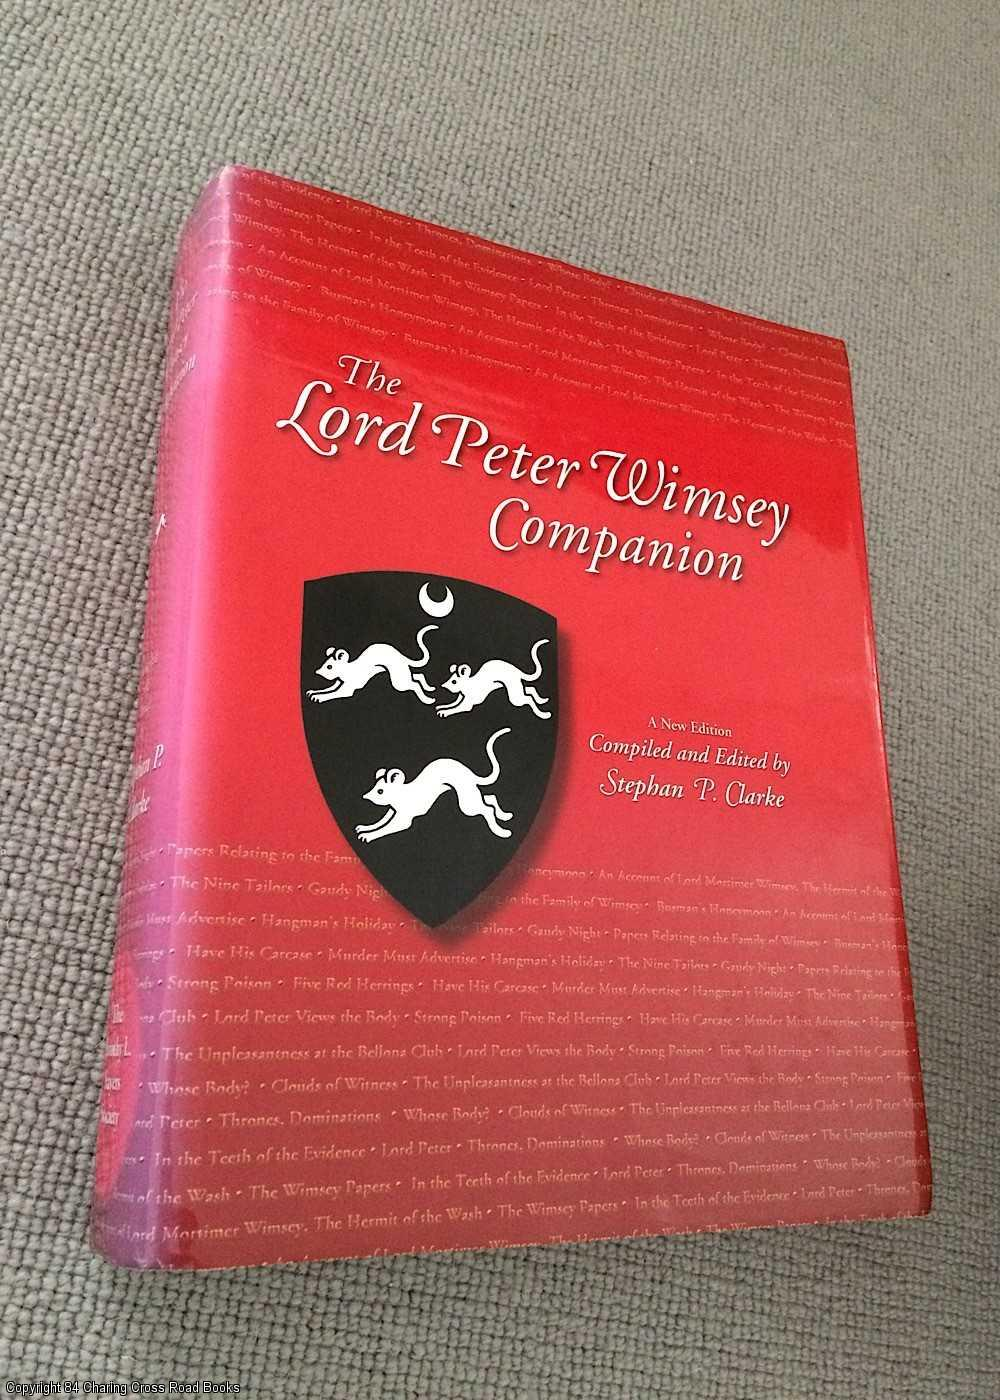 CLARKE, STEPHEN P. - The Lord Peter Wimsey Companion